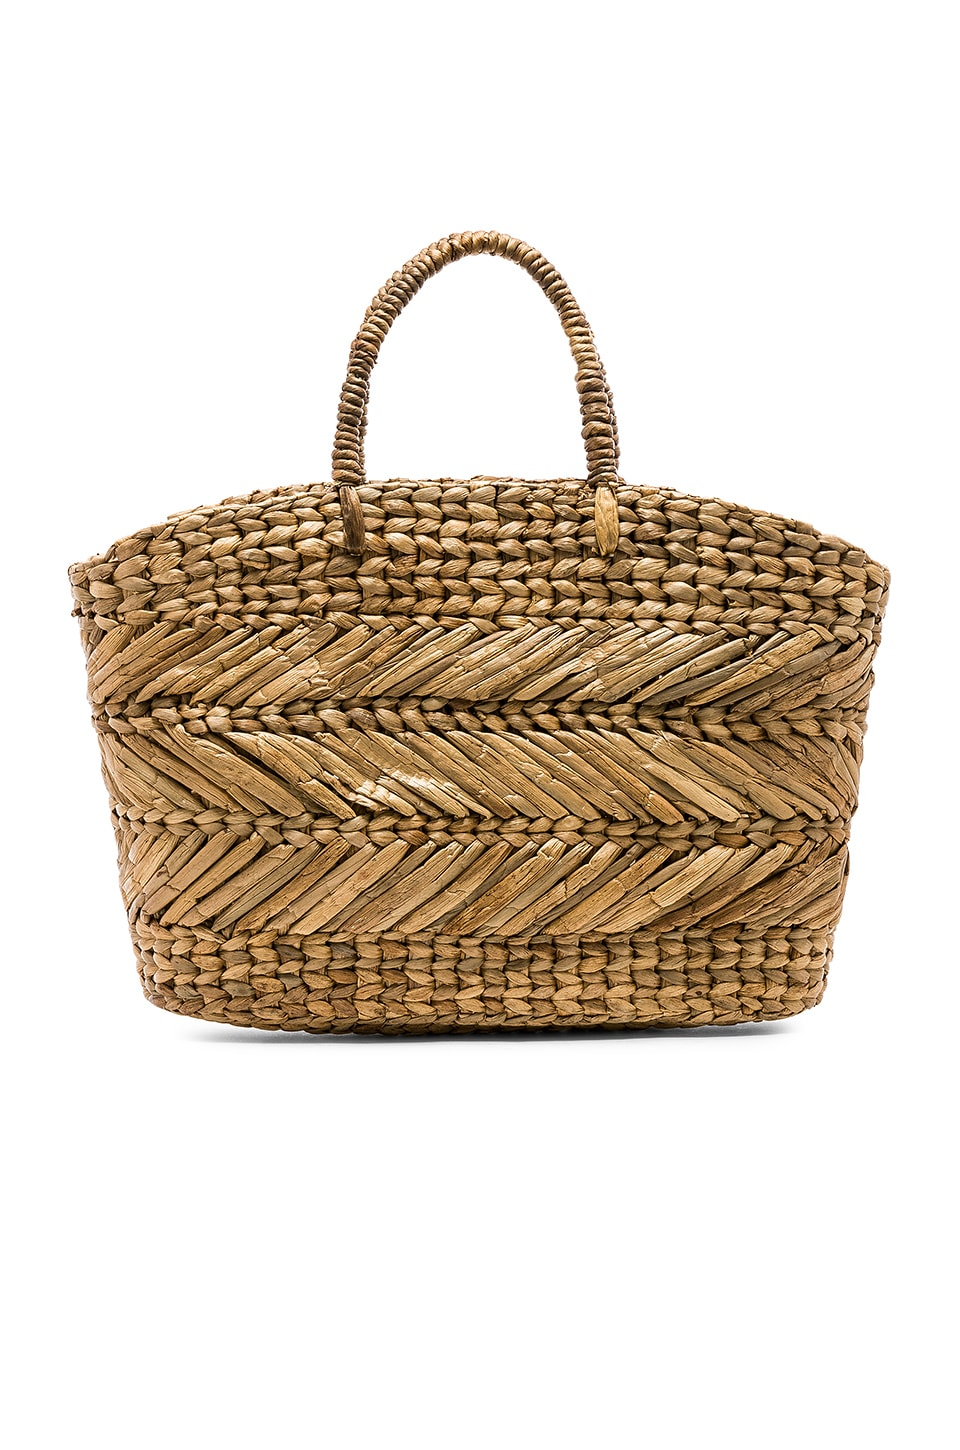 ELLEN & JAMES Corfu Beach Basket Bag in Tan